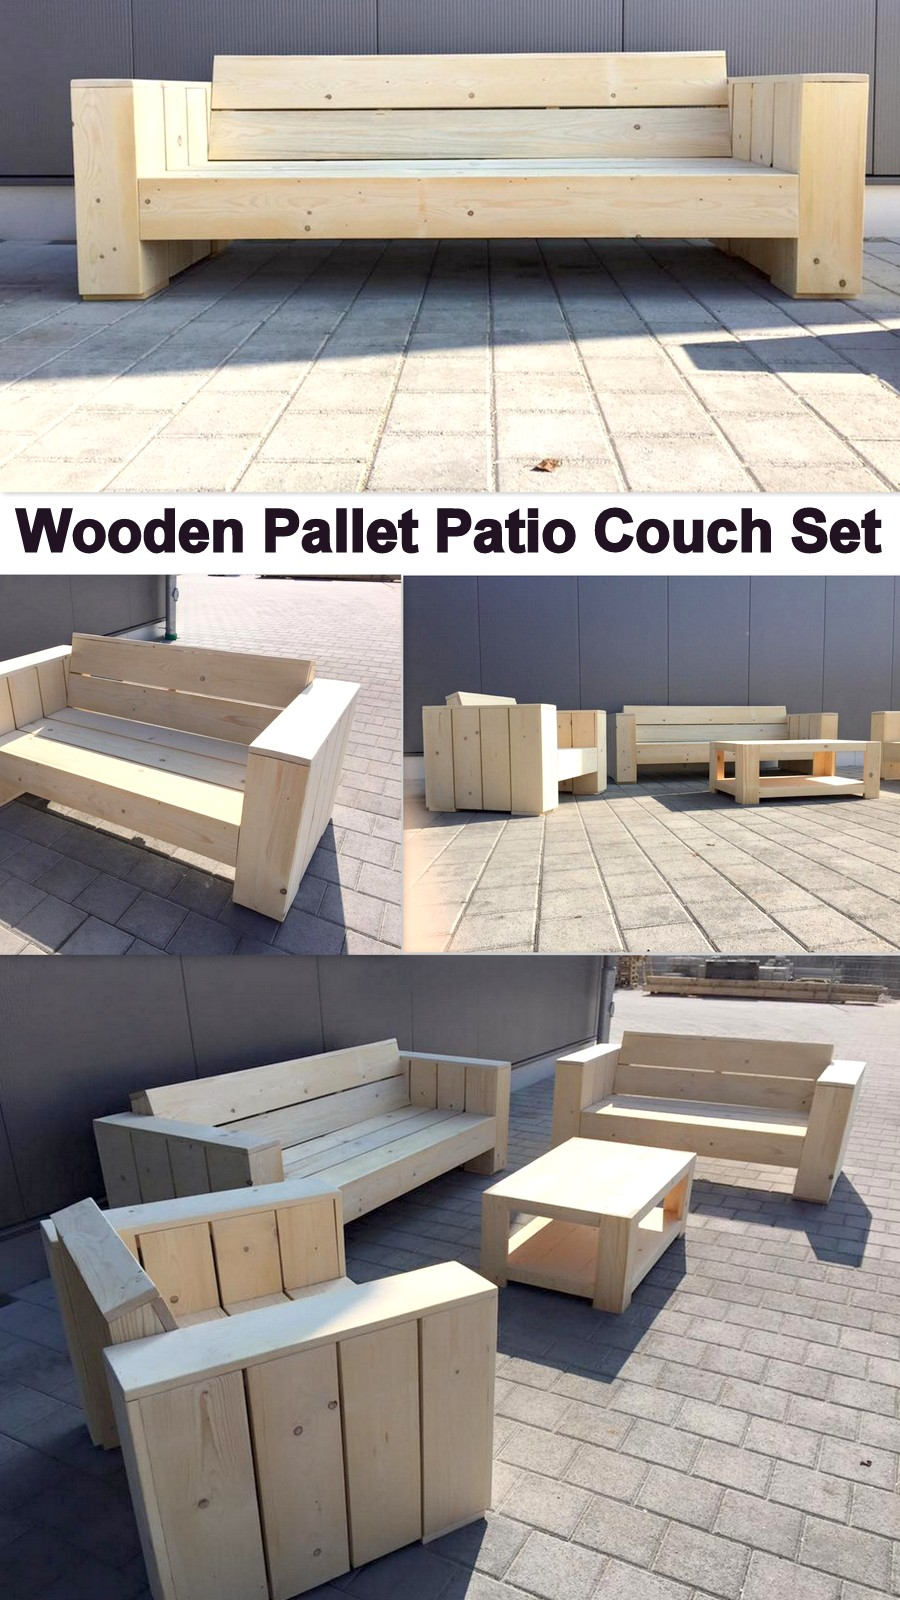 Wooden Pallet Patio Couch Set